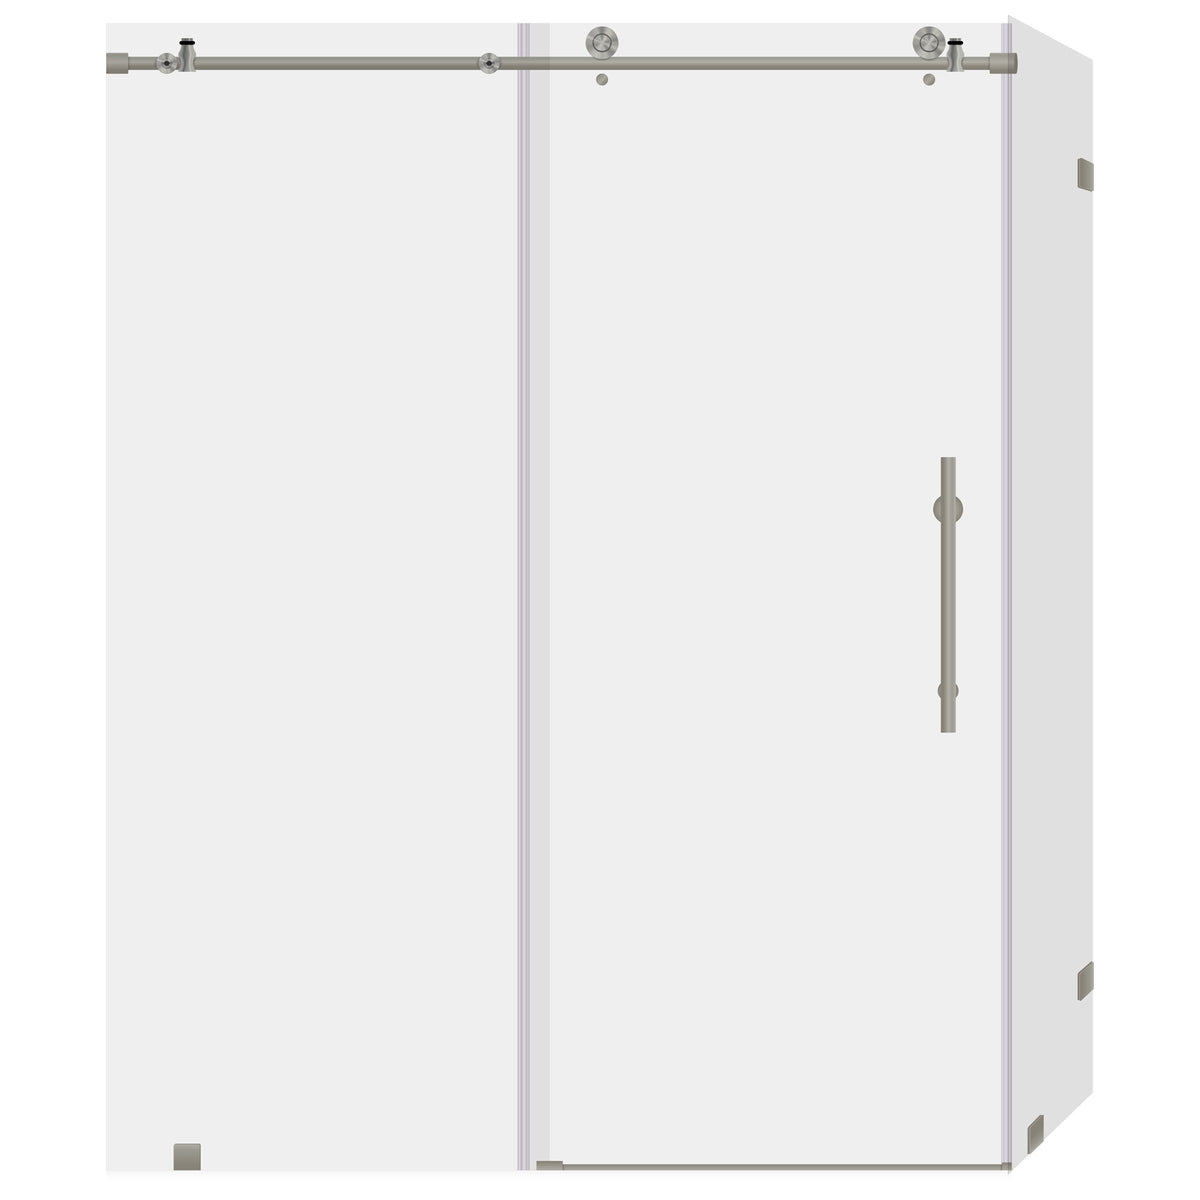 Sliding Shower Door And Enclosure With Stationary Panel 44